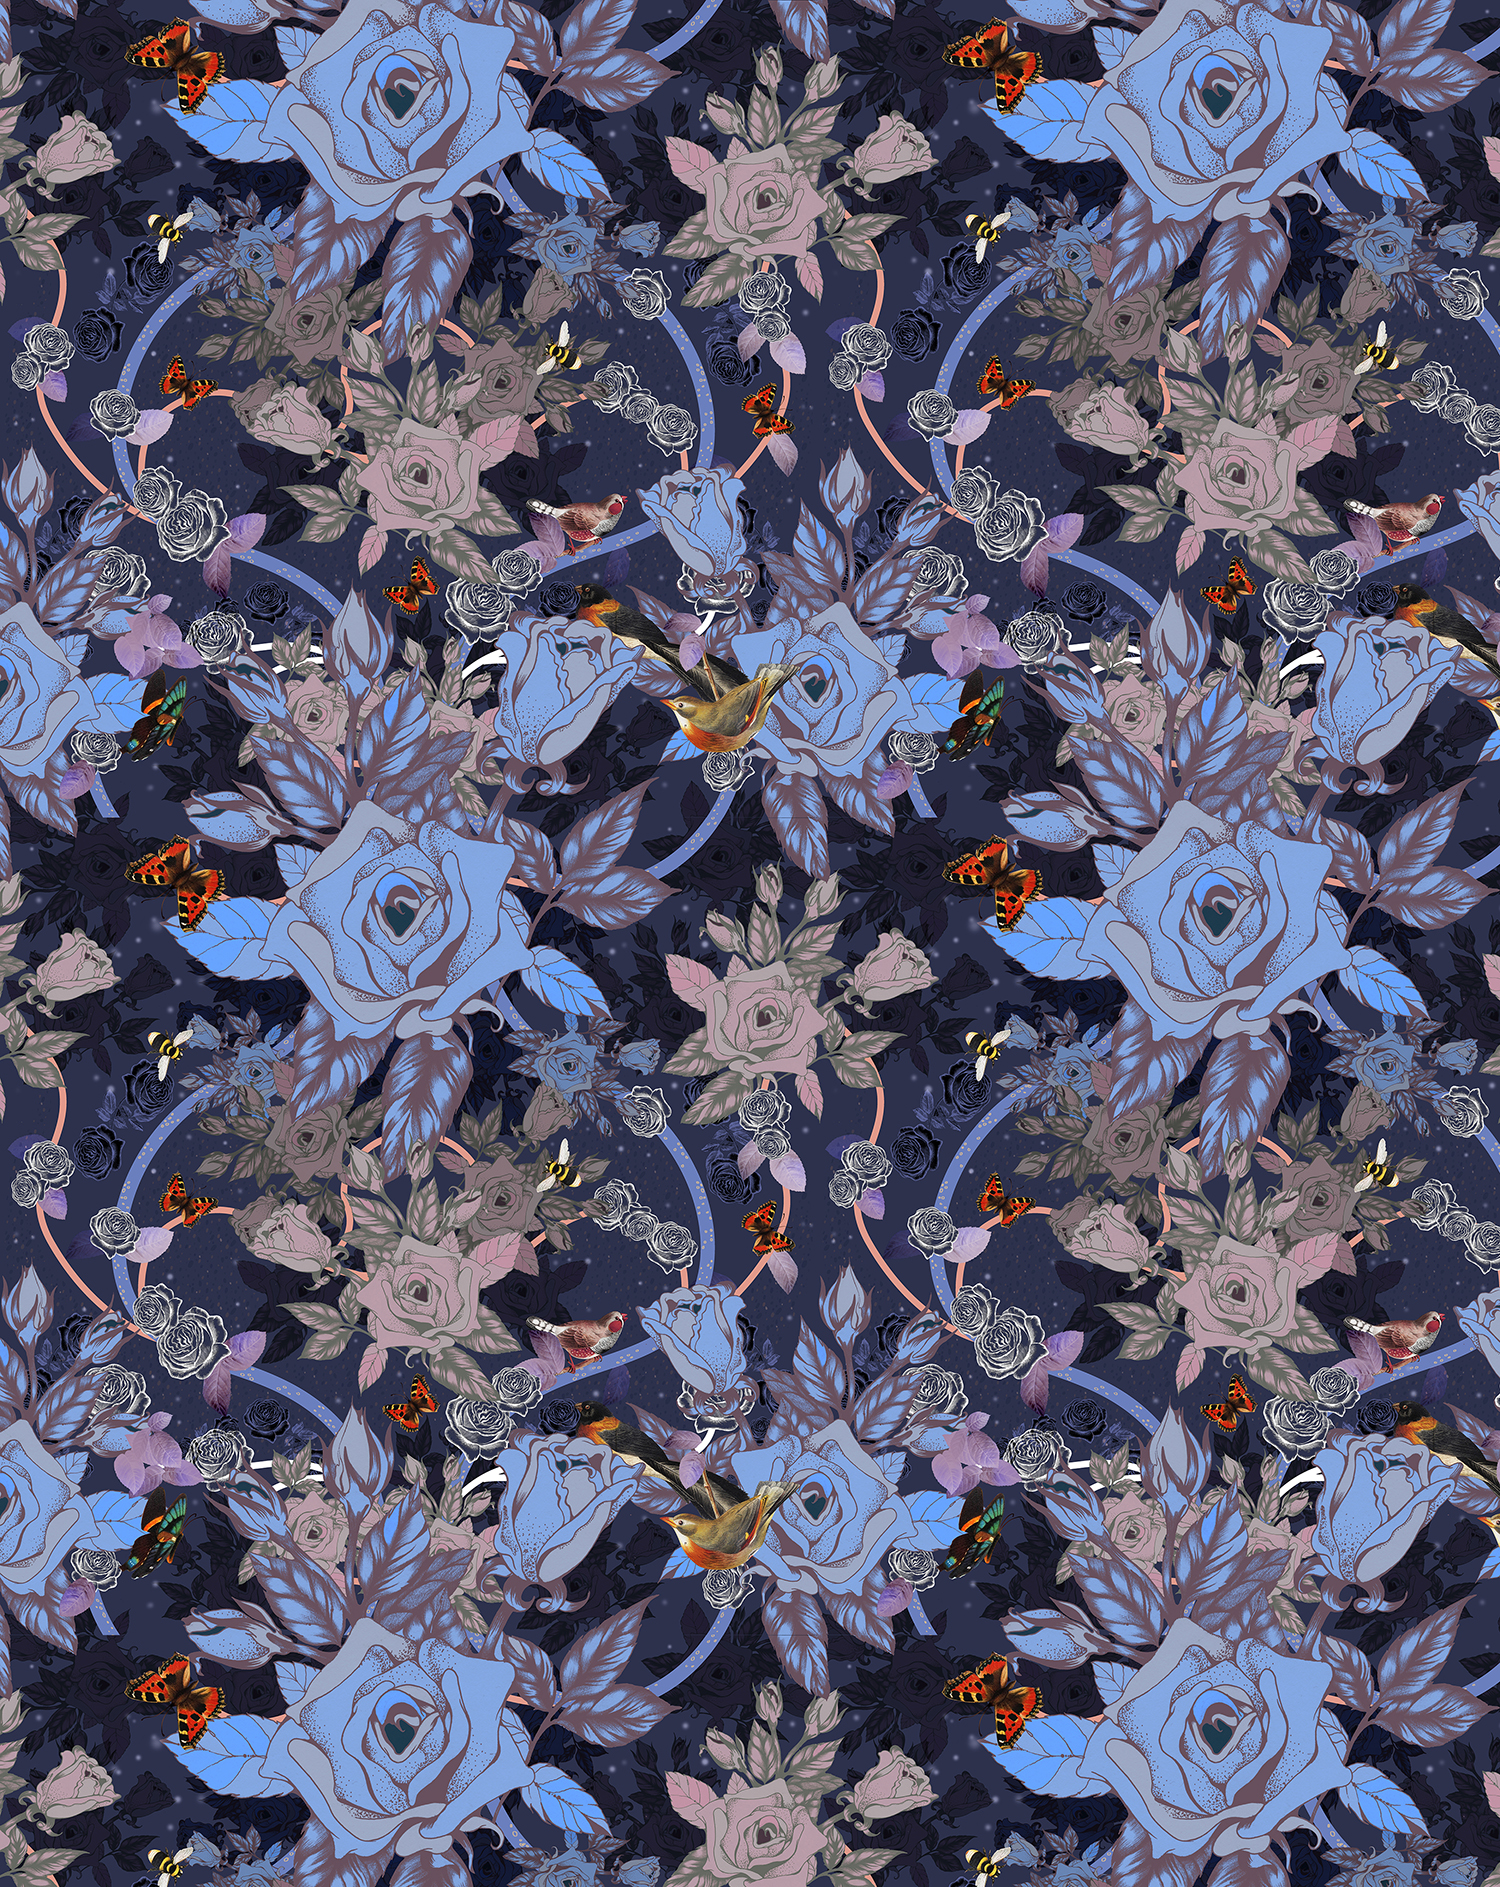 Pommechan_Pattern_Rose and Butterfly pattern1_Lowres_15x15.jpg